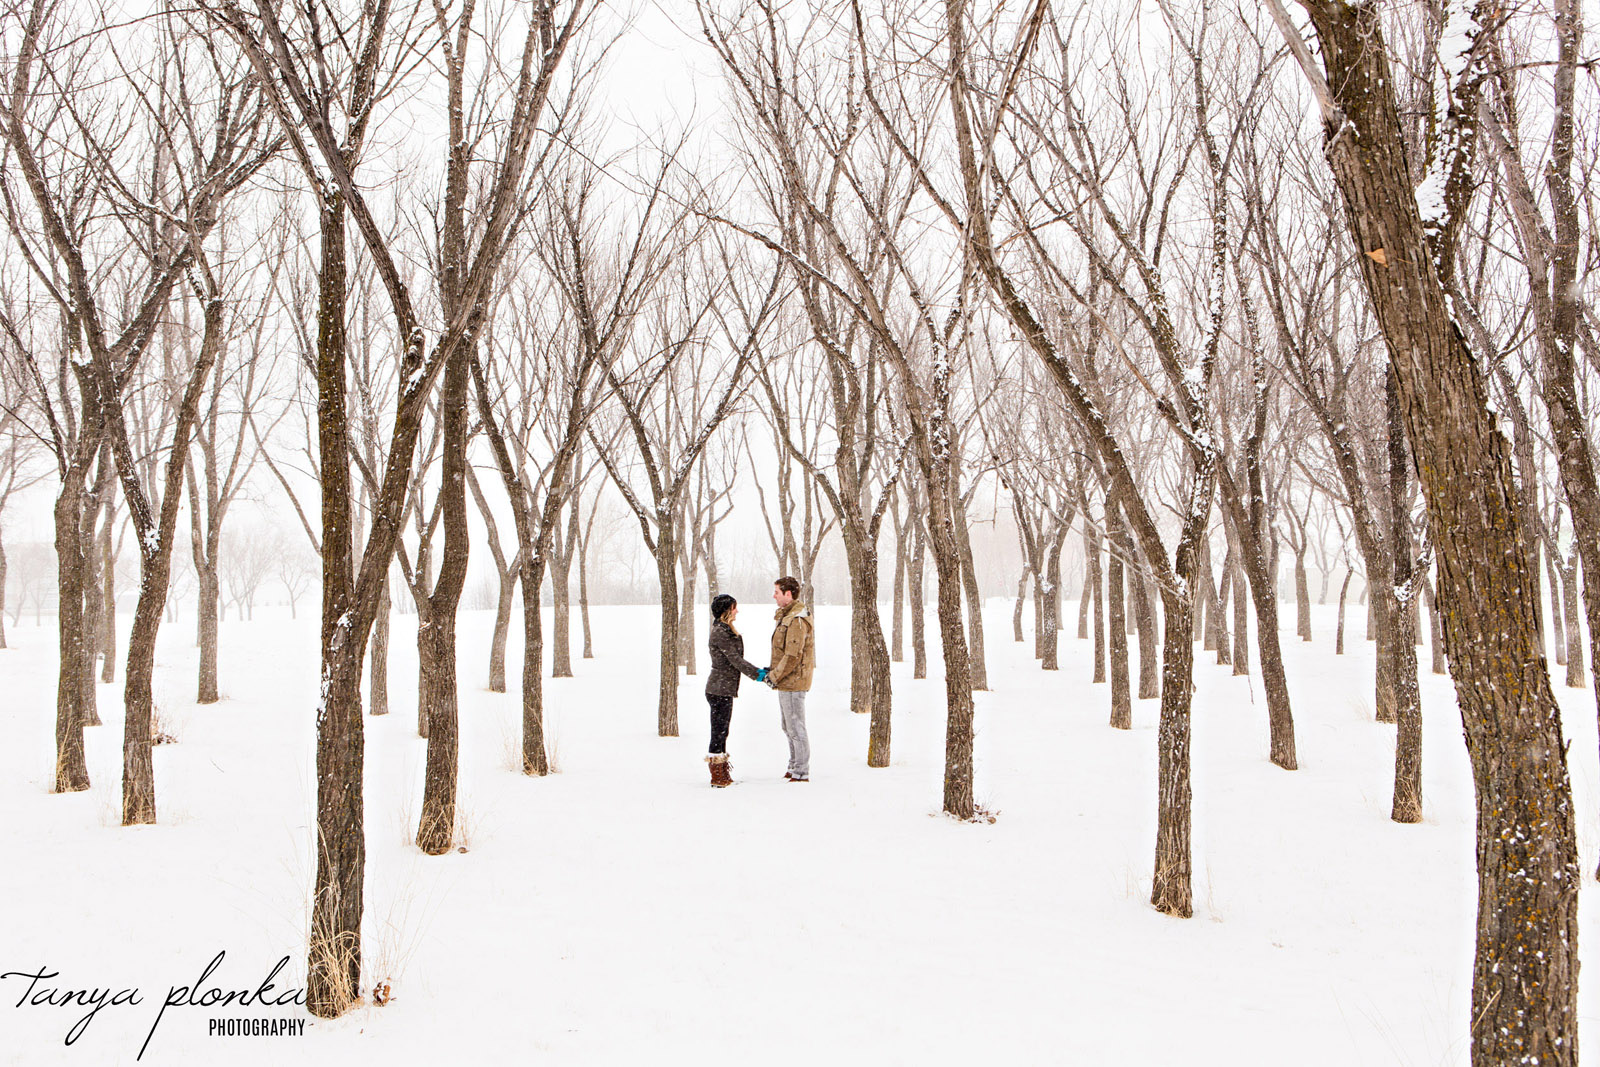 couple hold hands in wide patch of trees in snowy winter scene